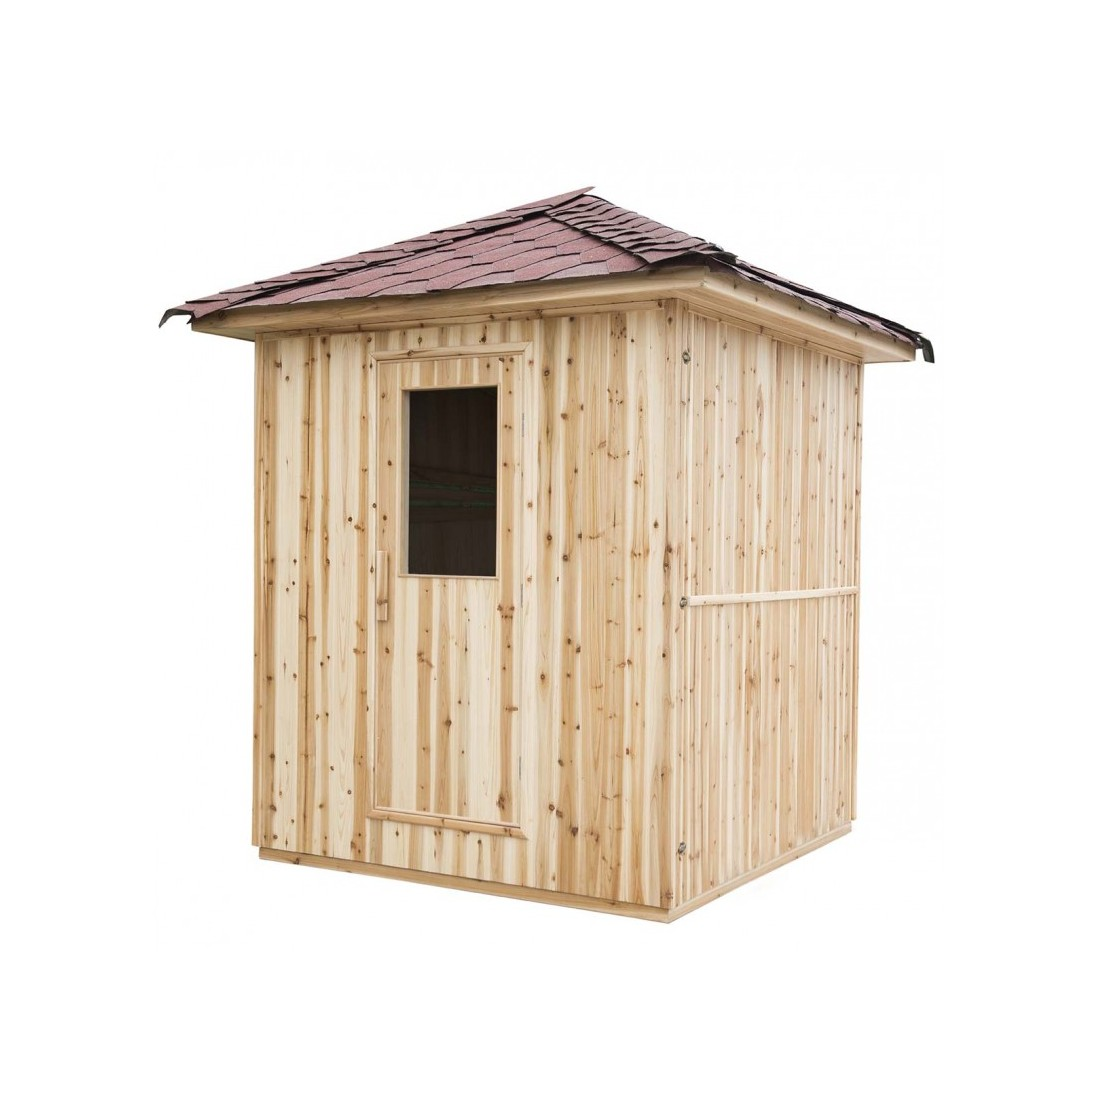 Sauna d ext rieur eden 3 4 places for Sauna d exterieur